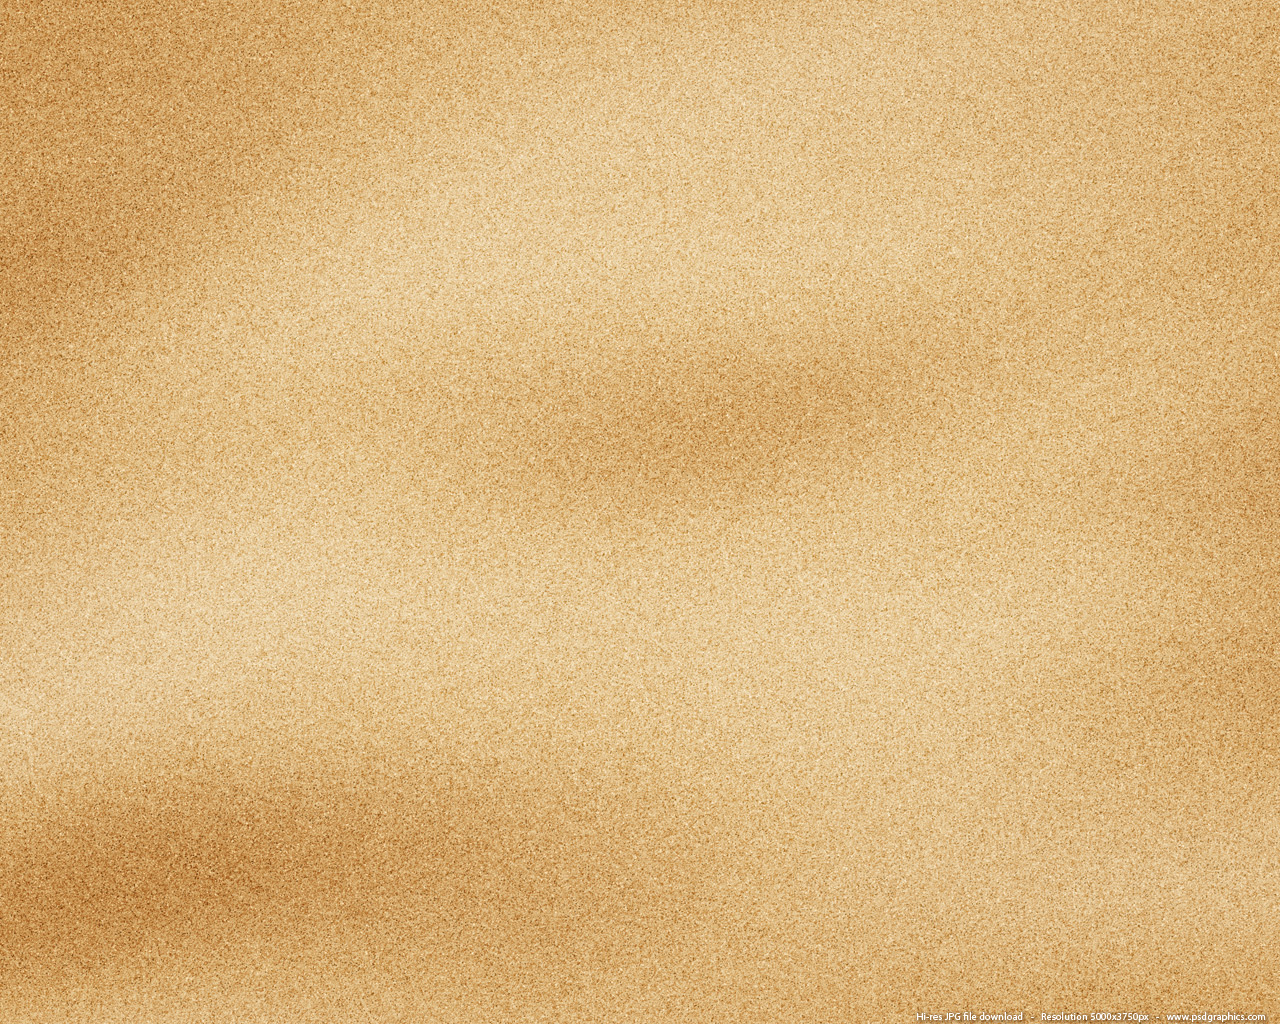 ... Beach sand background